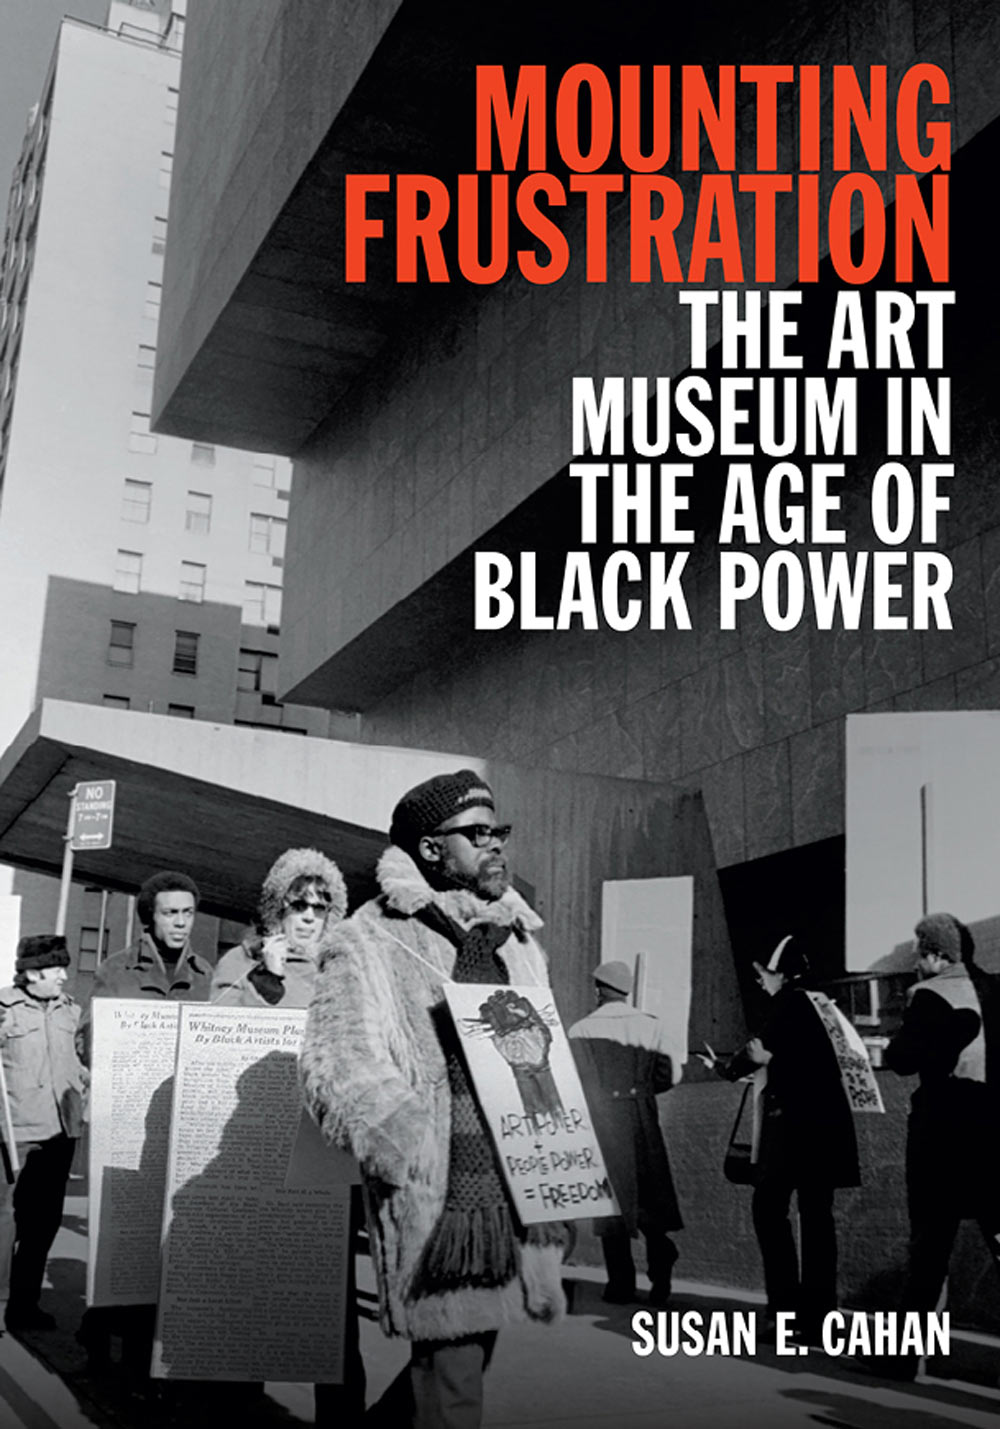 Mounting Frustration: The Art Museum in the Age of Black Power by Susan E. Cahan